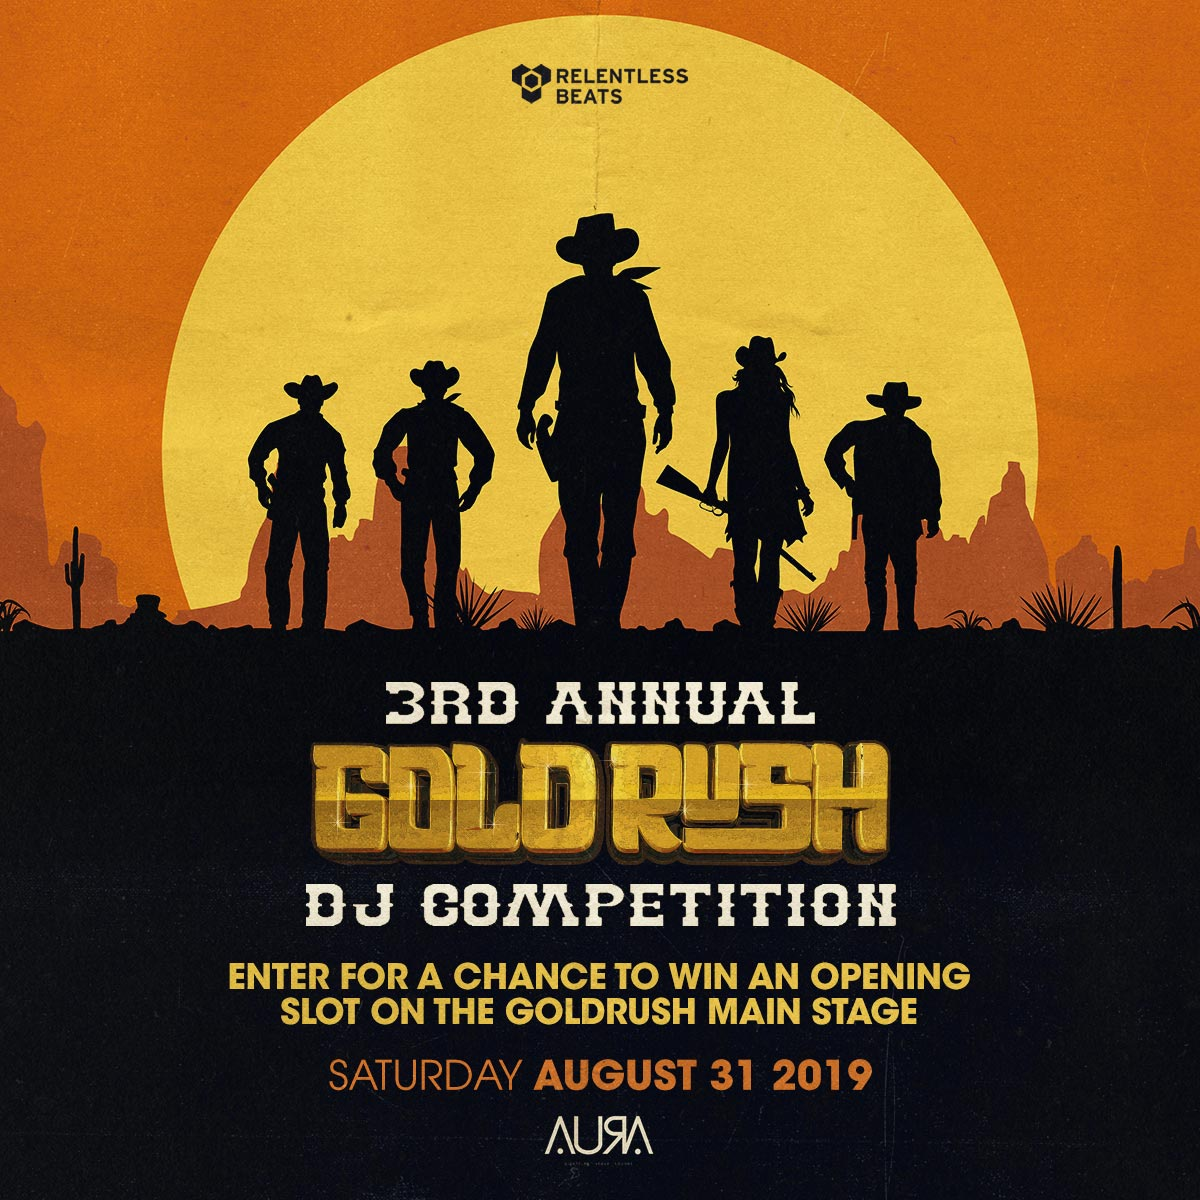 Flyer for 3rd Annual Goldrush DJ Competition